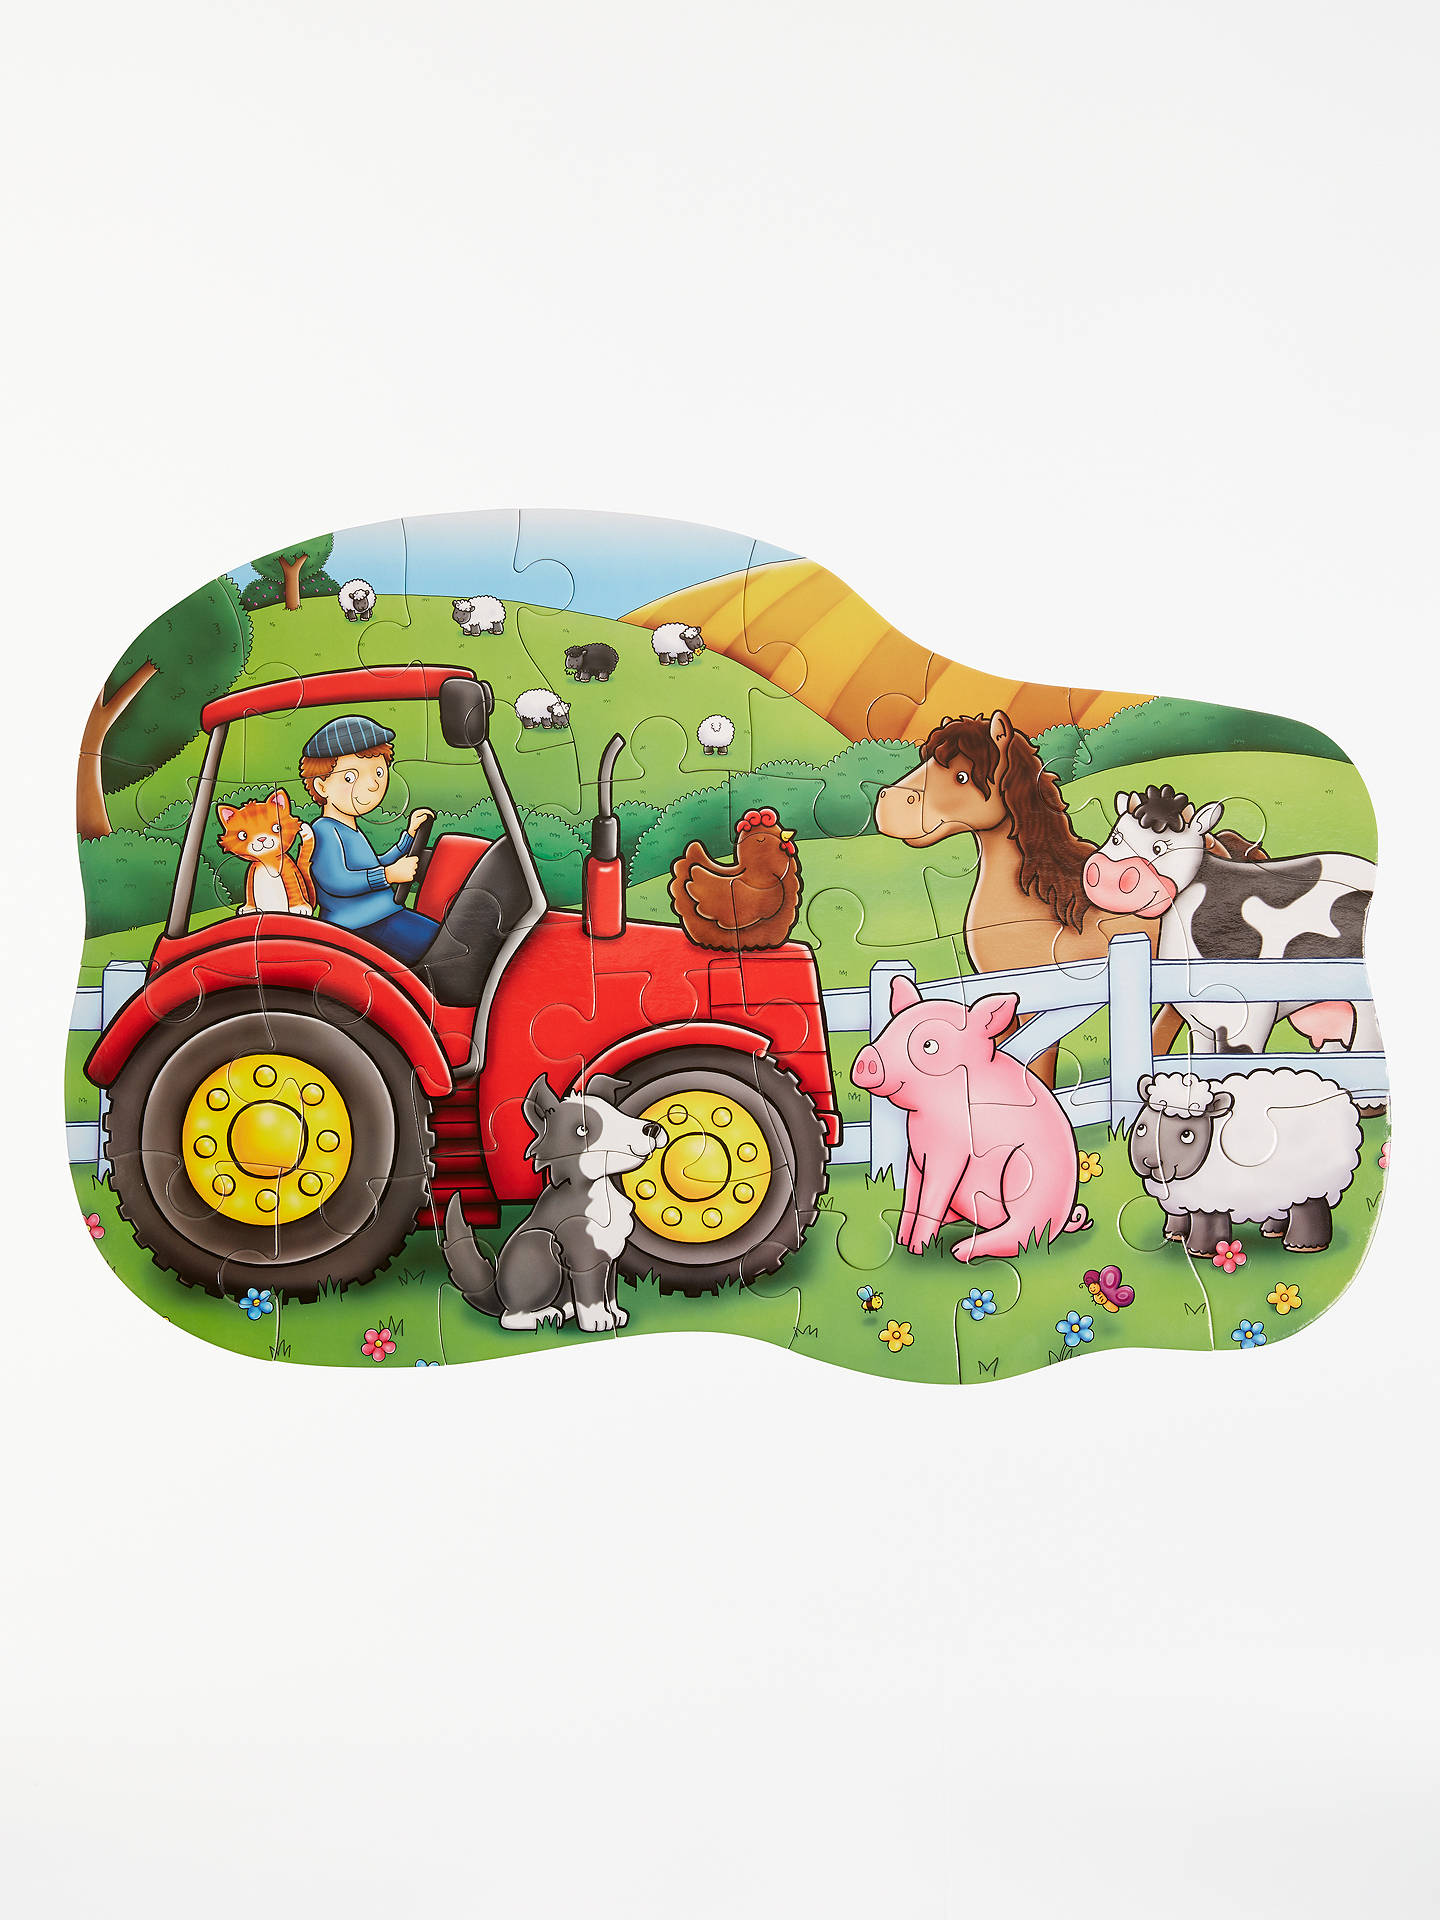 BuyJohn Lewis & Partners Red Tractor Floor Jigsaw Puzzle, 26 Pieces Online at johnlewis.com